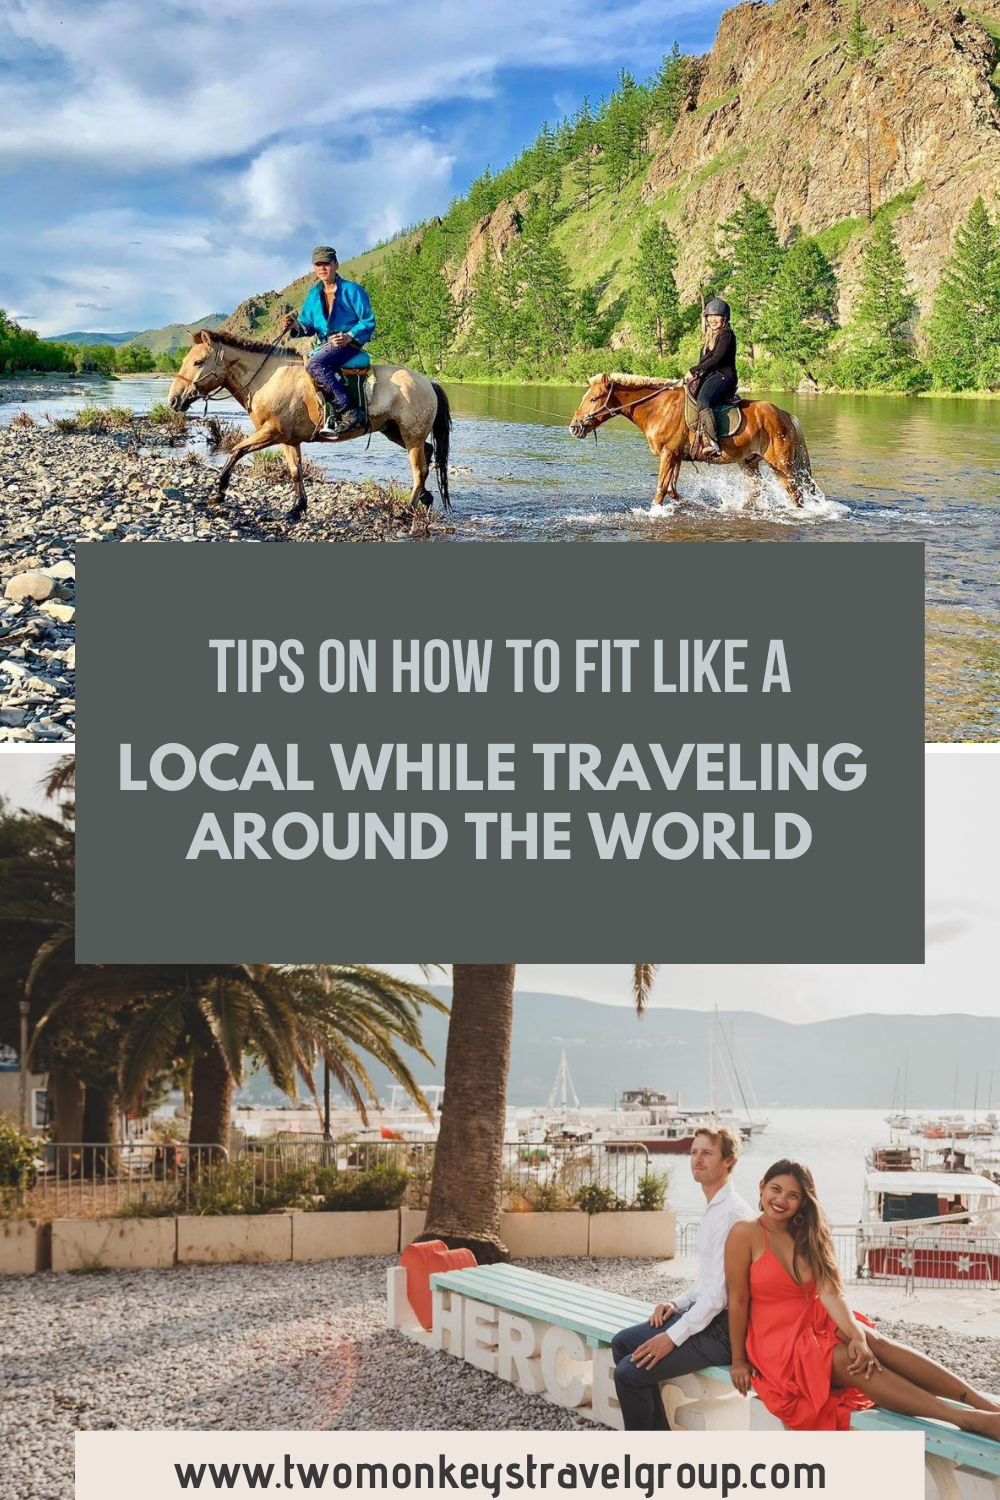 5 Tips on How to Fit Like a Local while Traveling around the World